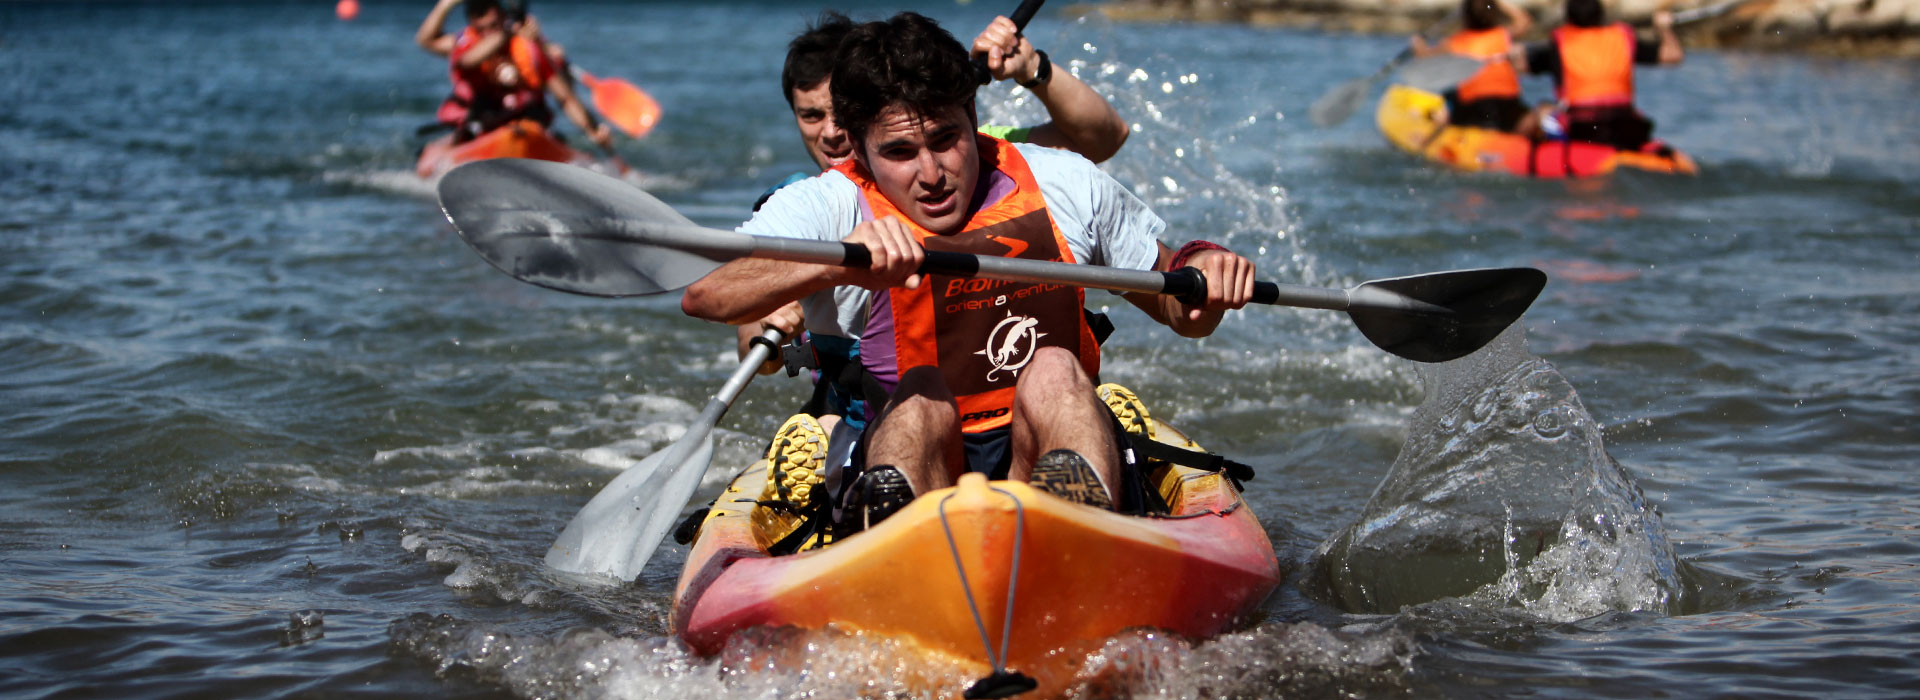 Water activities to do in Spain